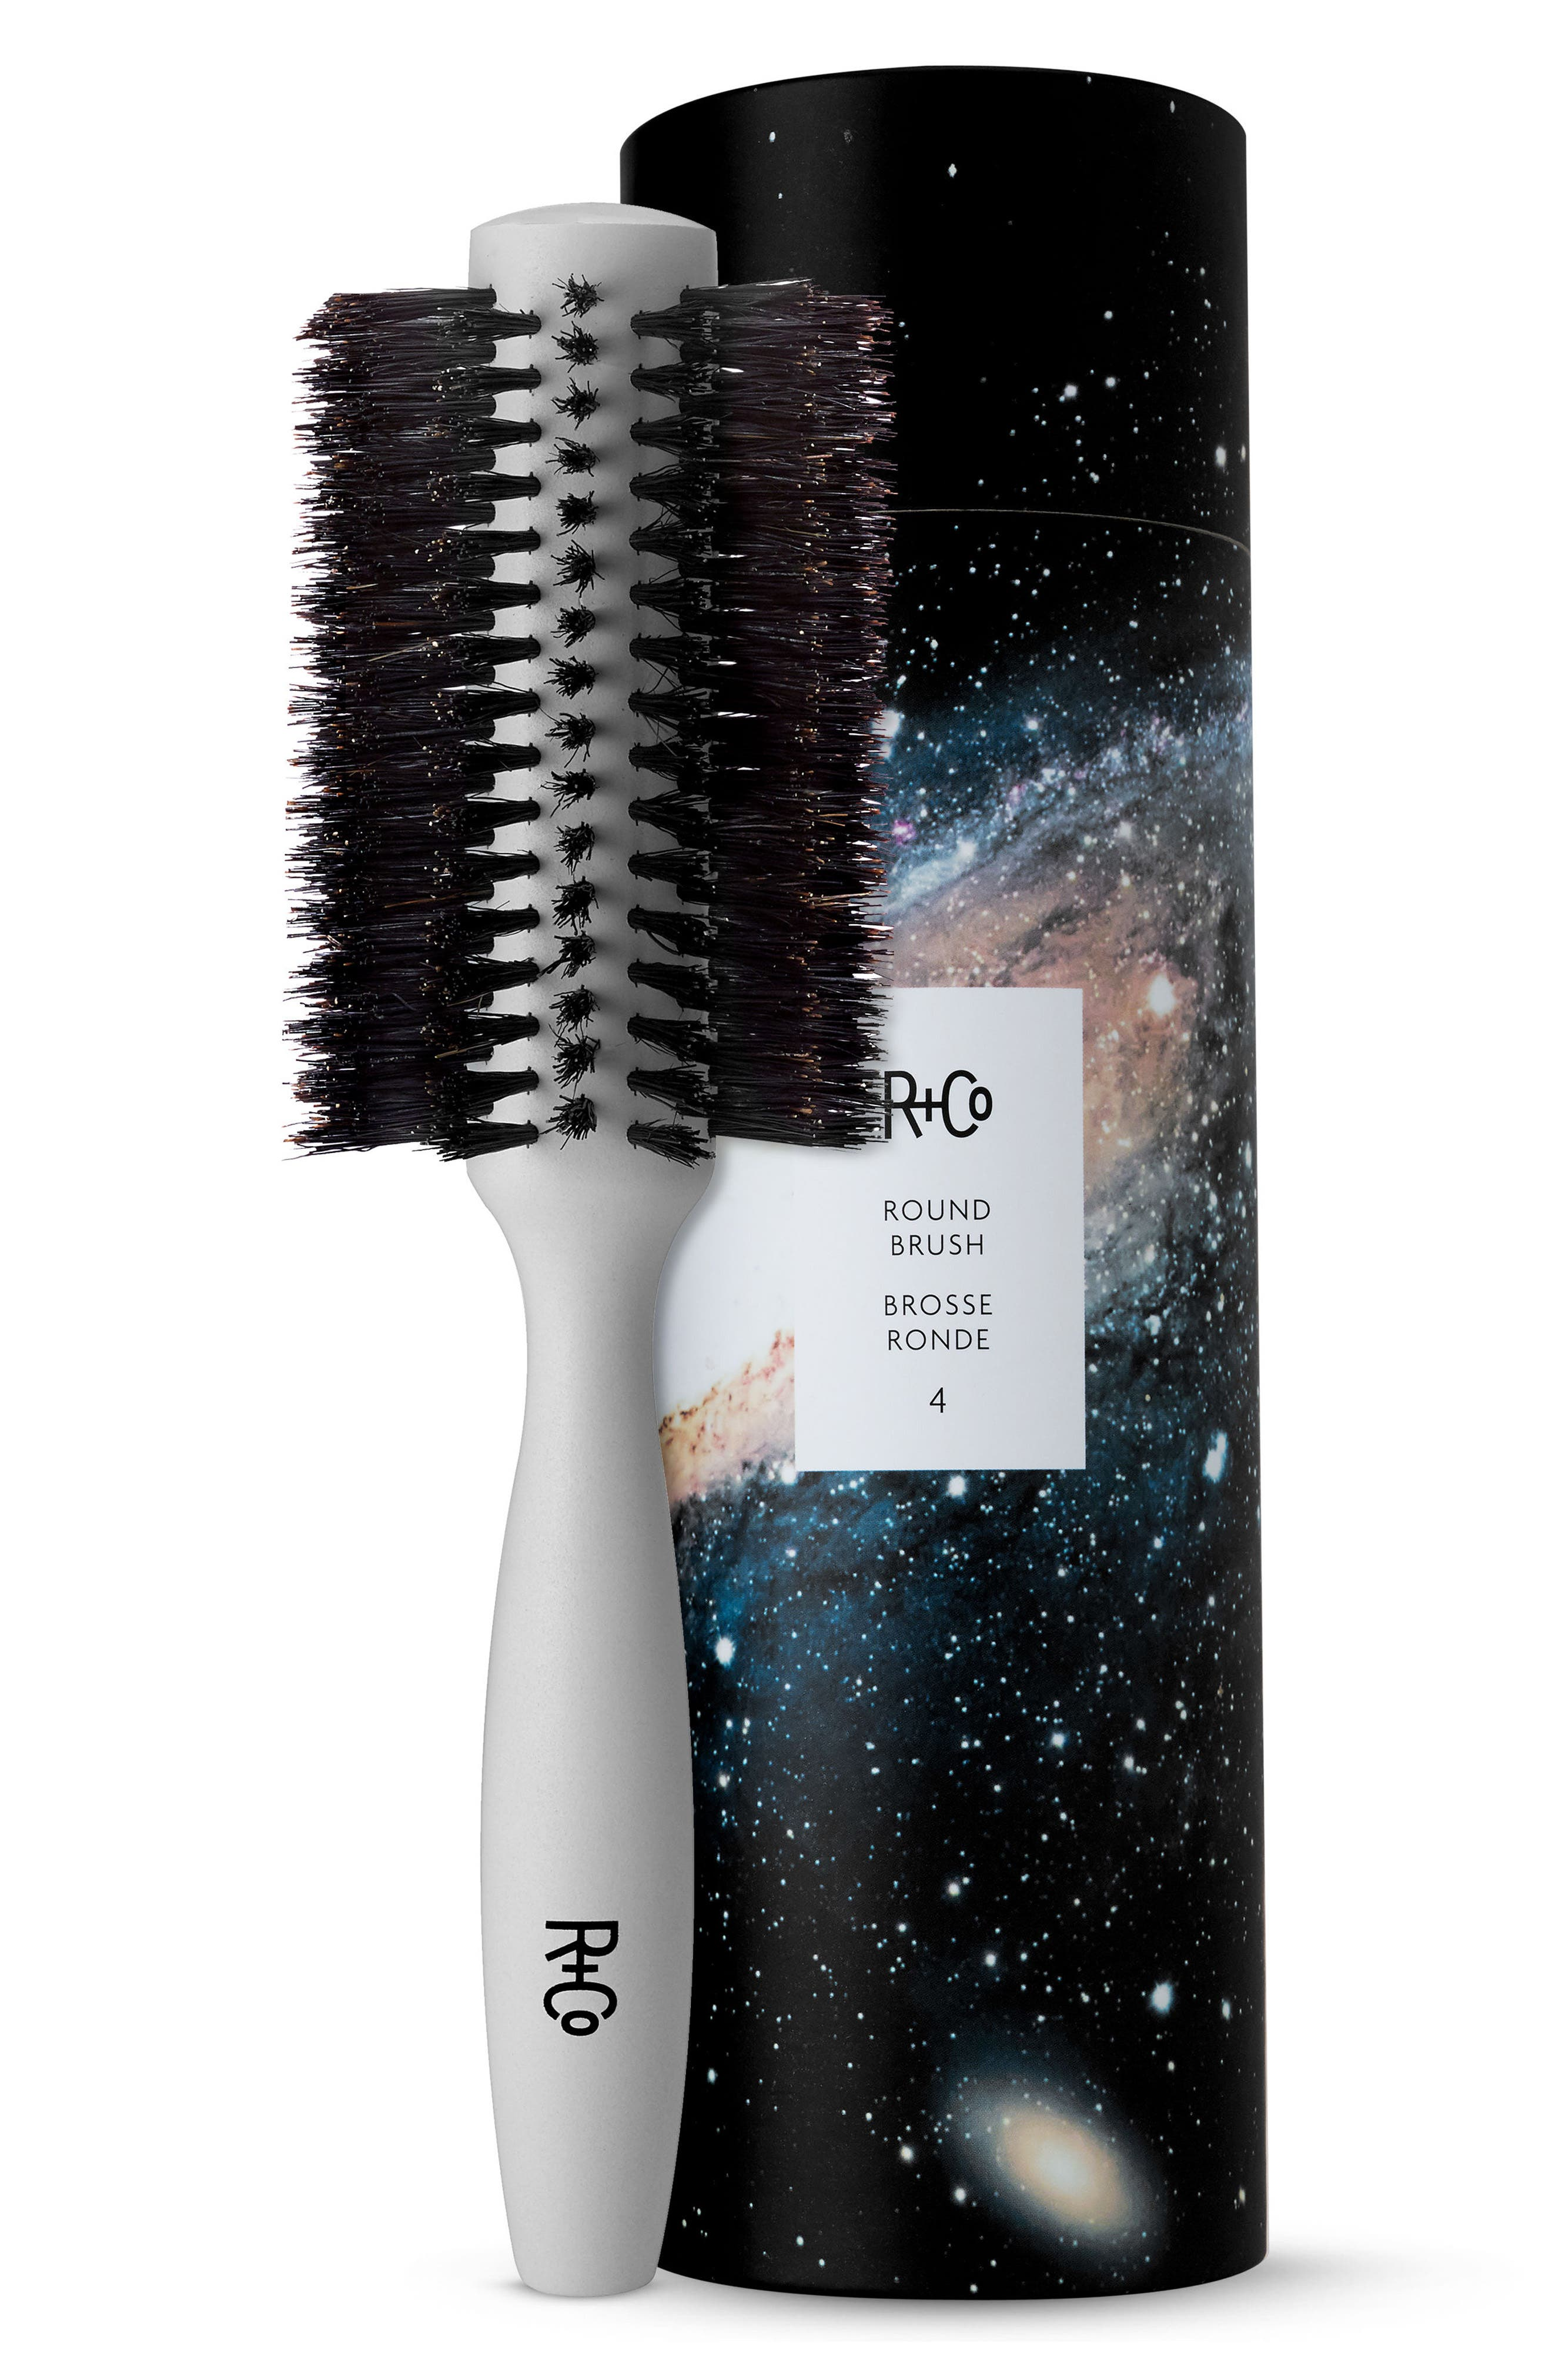 SPACE.NK.apothecary R+Co Large Round Brush 4,                         Main,                         color, 000